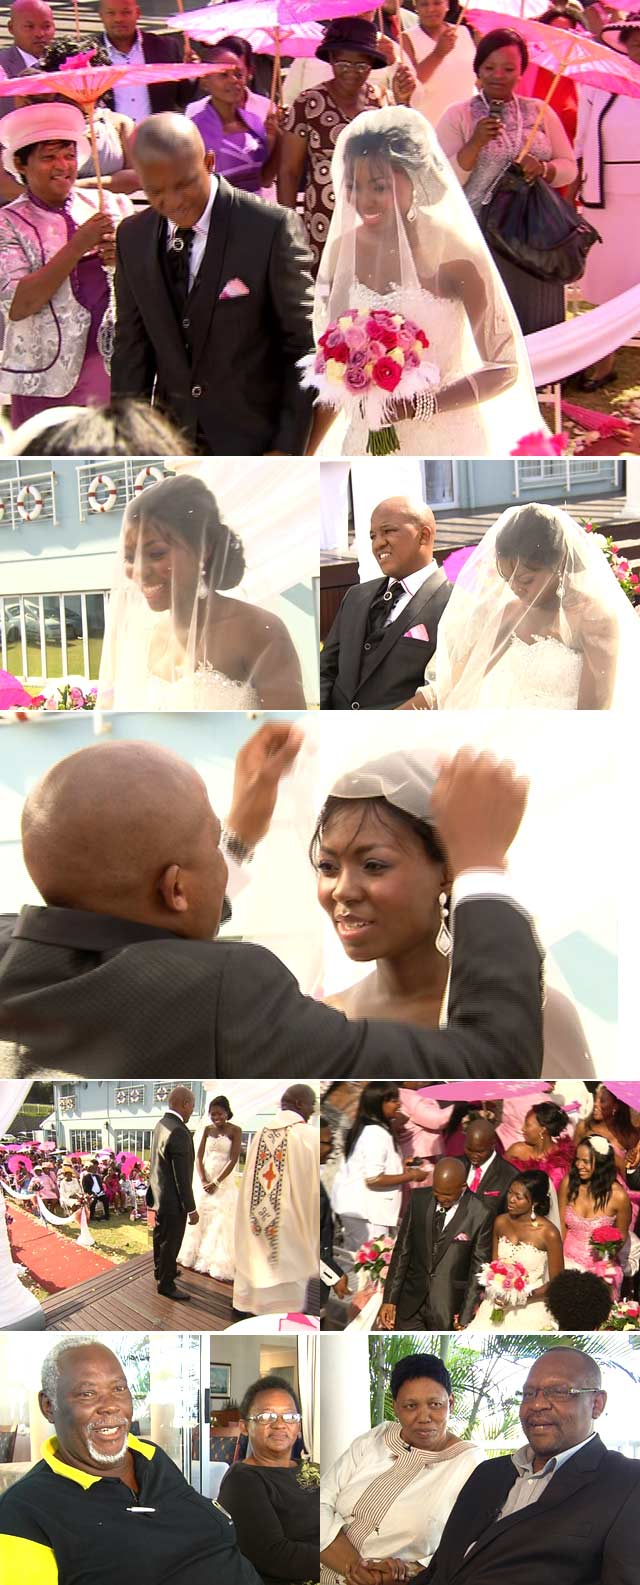 Minister of Basic Education's Daughter's Wedding on Top Billing